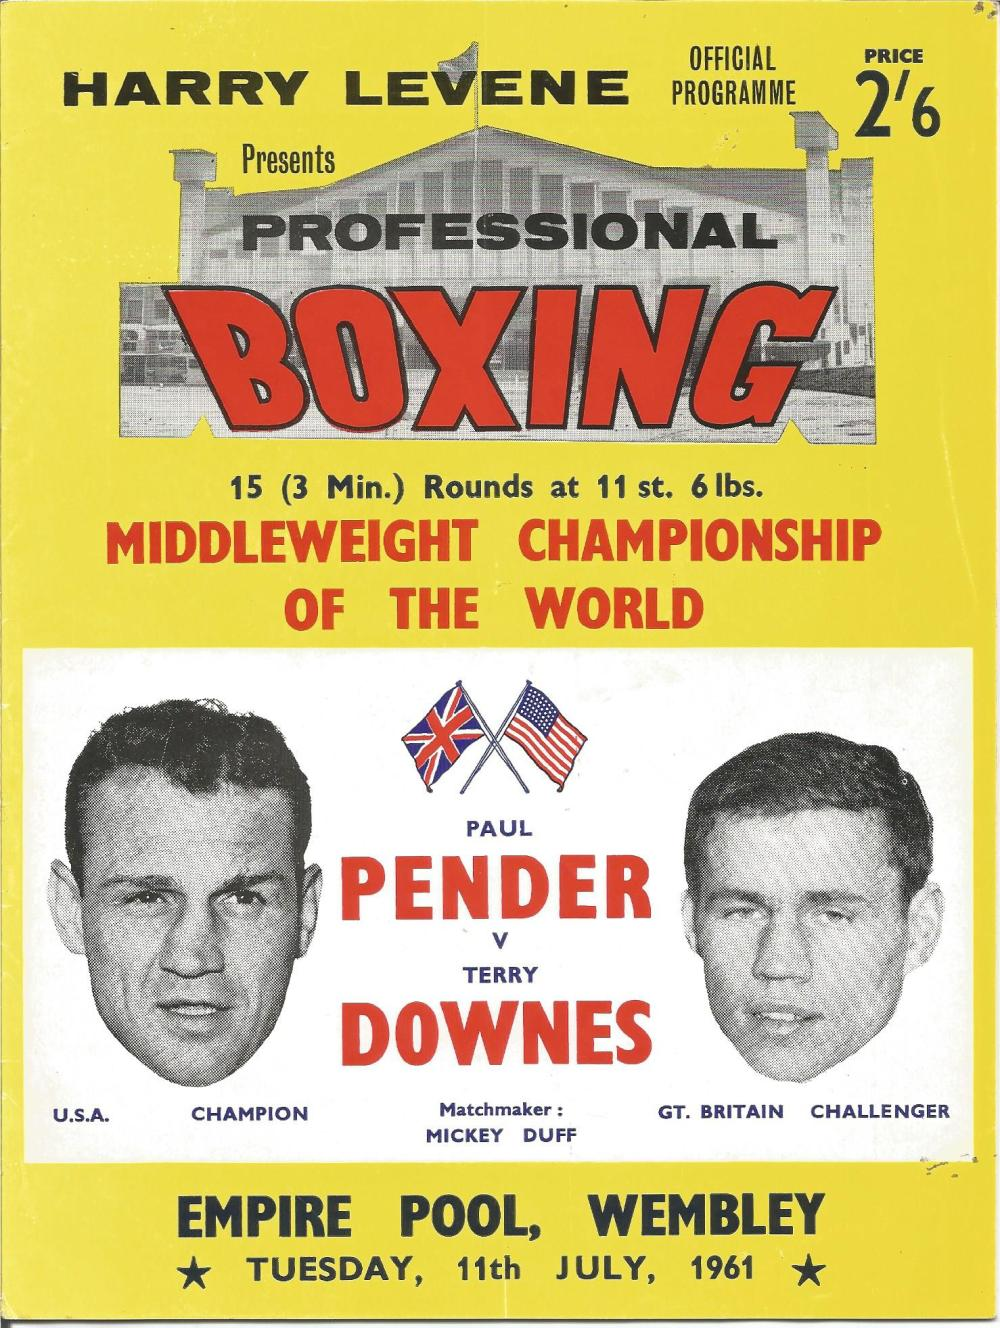 Boxing Paul Pender v Terry Downes Middleweight Championship of the World vintage fight programme